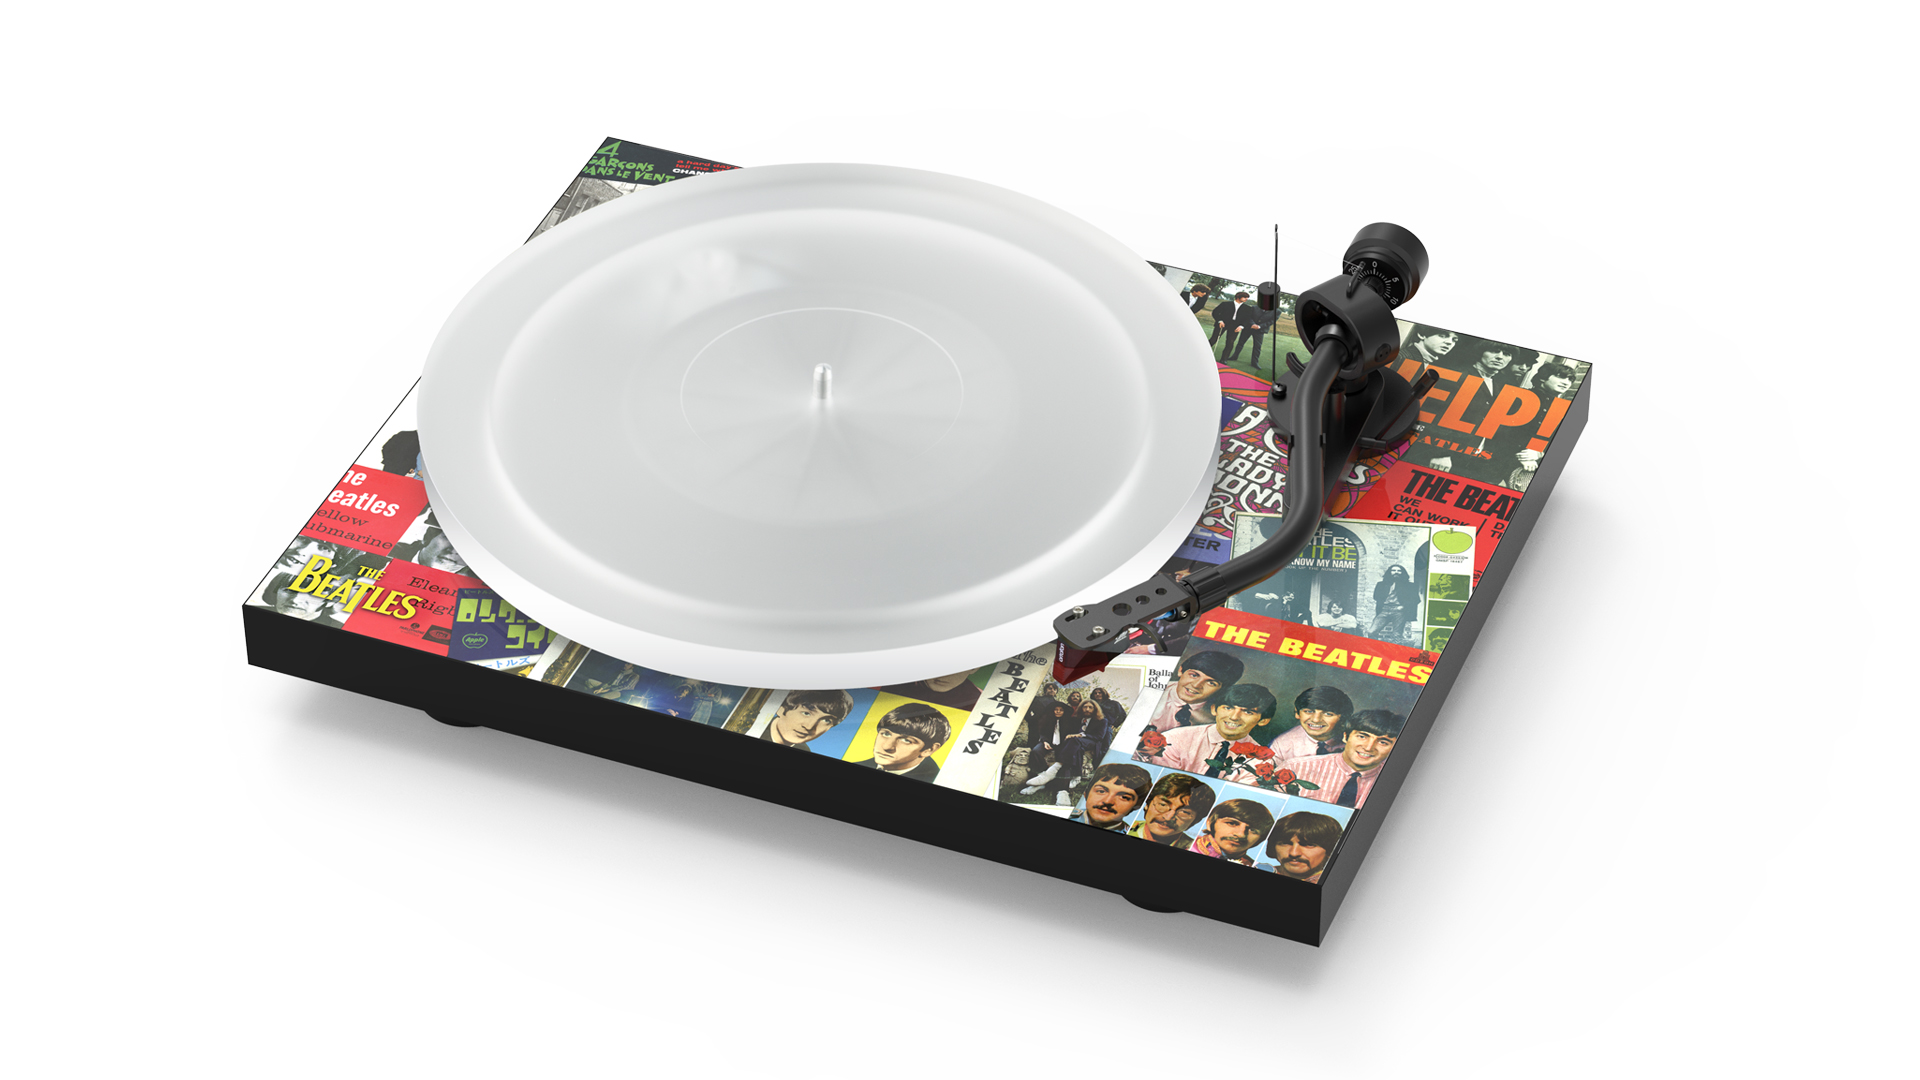 Turntable with singles motifs (Image: Pro-Ject)